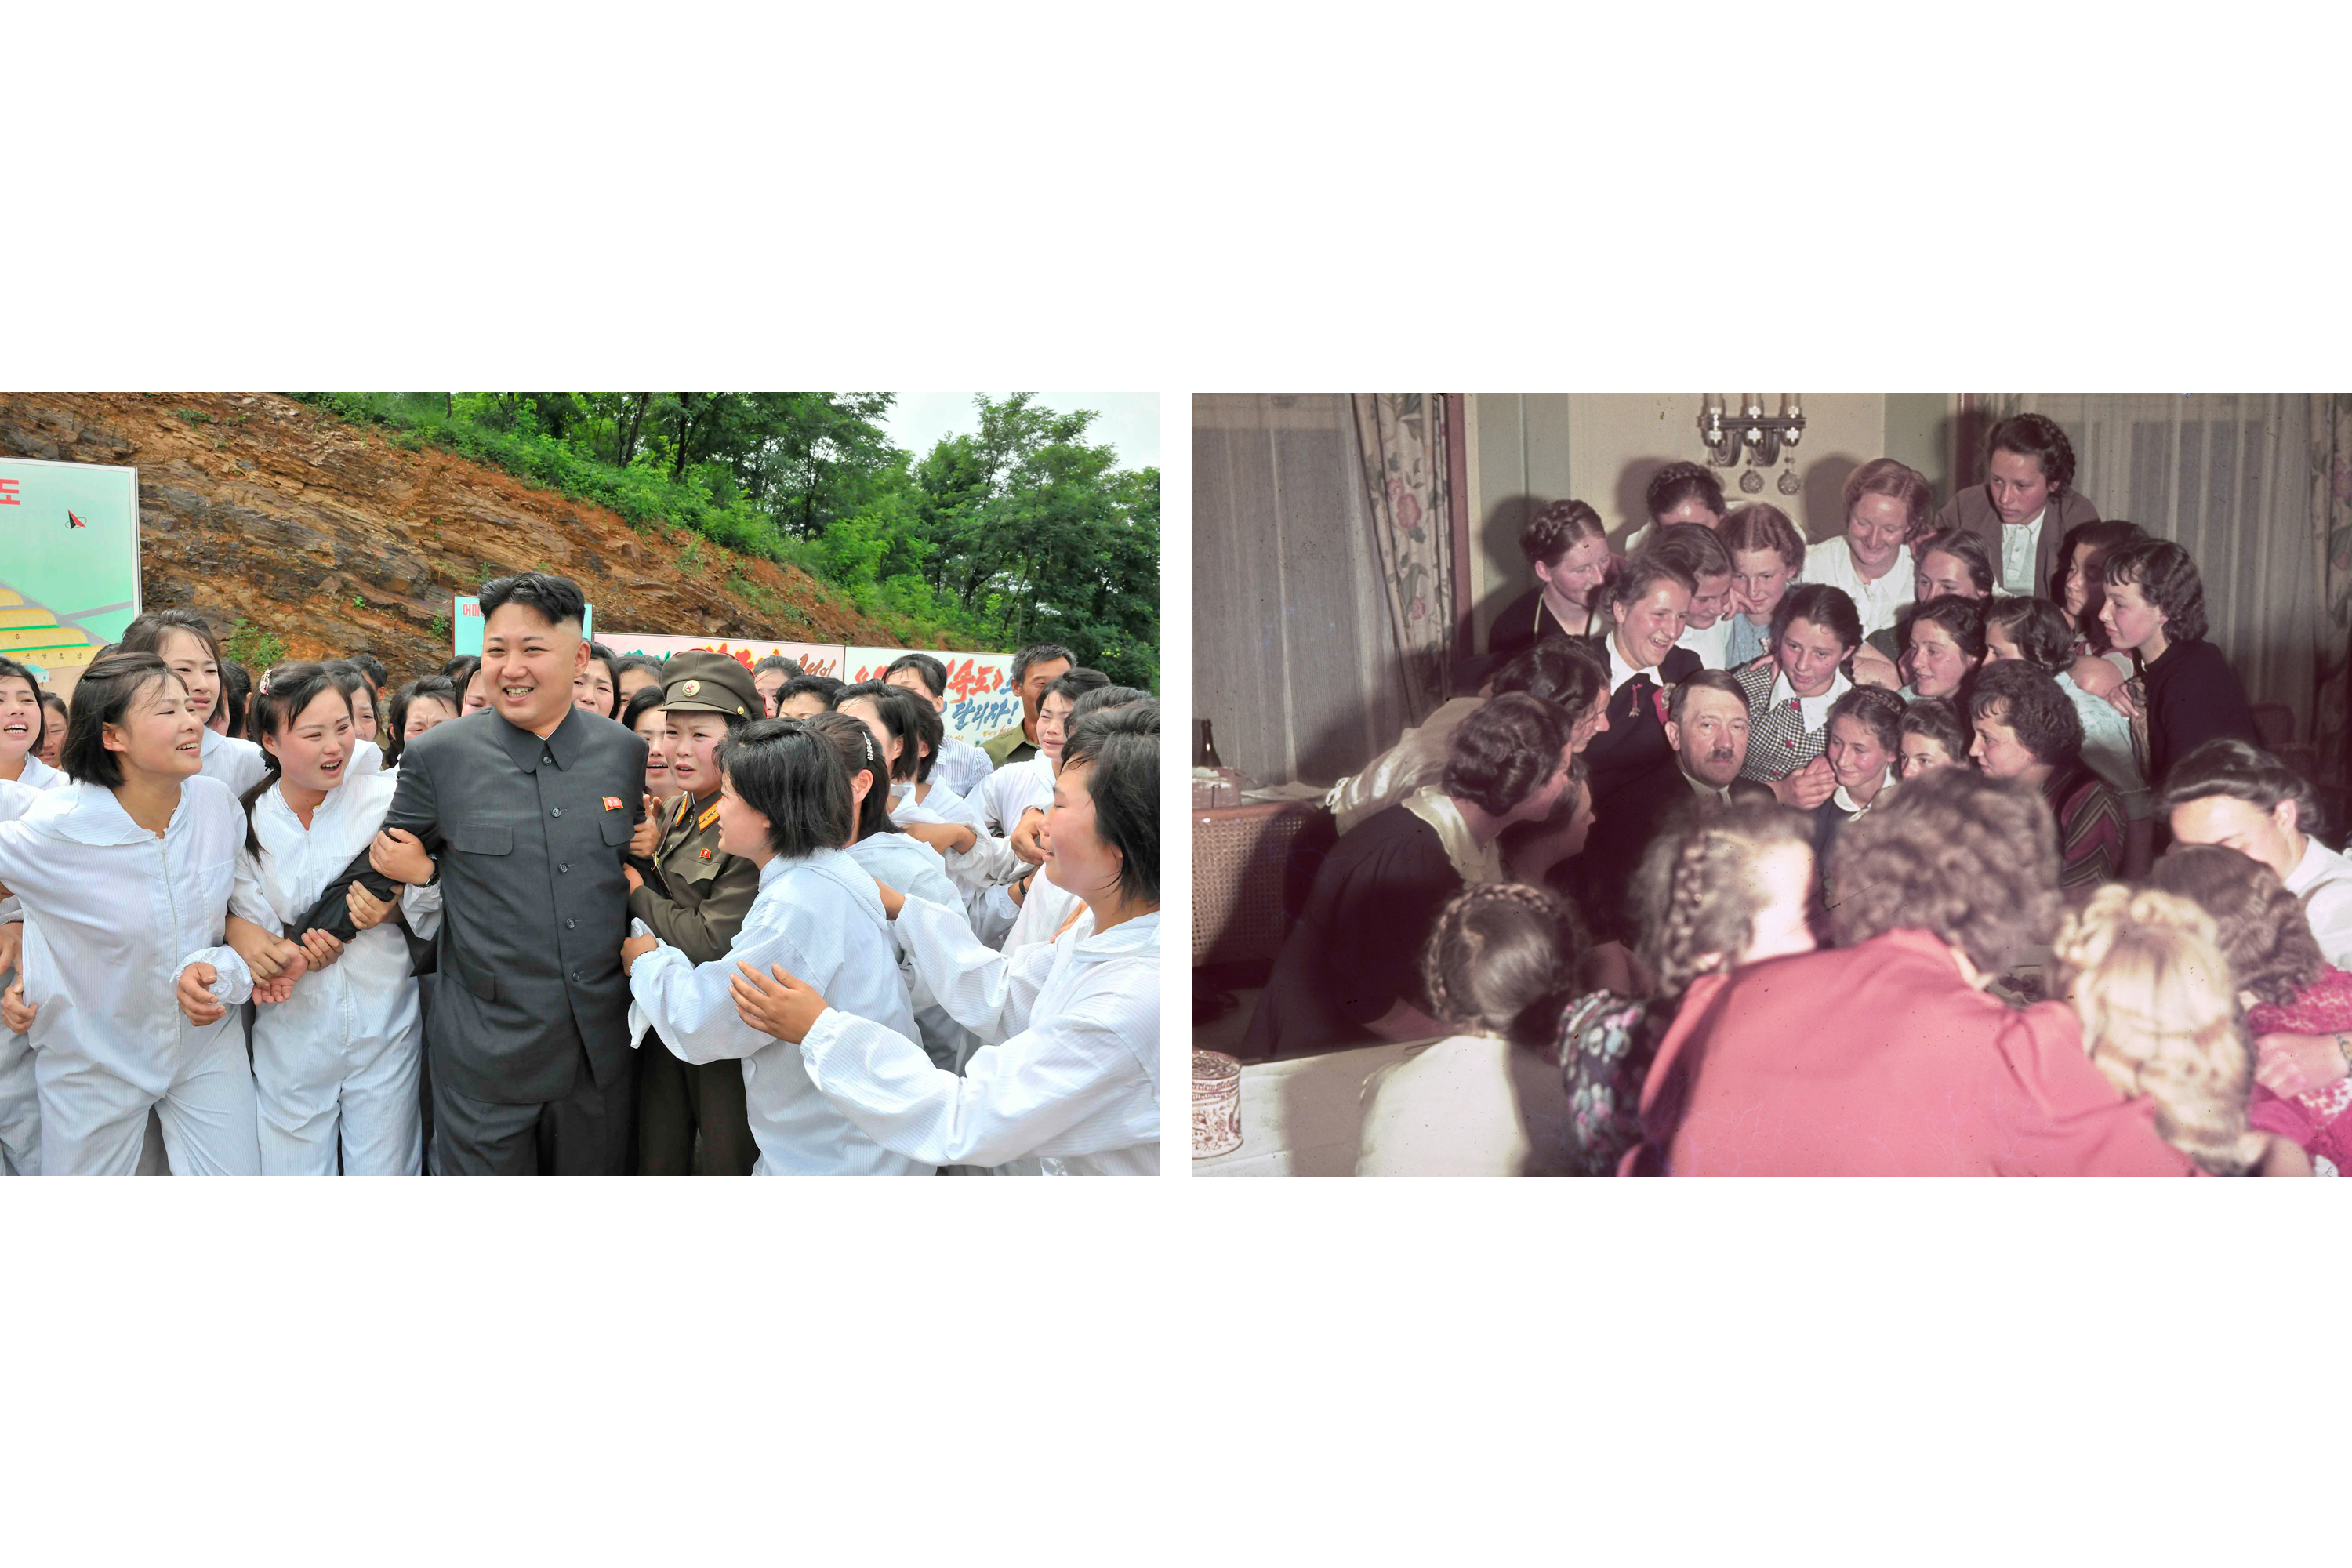 (Left) North Korean leader Kim Jong Un visits a mushroom farm in an undated photo released in July 2013 by North Korea's Korean Central News Agency (KCNA); (right) Adolf Hitler surrounded by adoring Austrian women and girls, 1939.